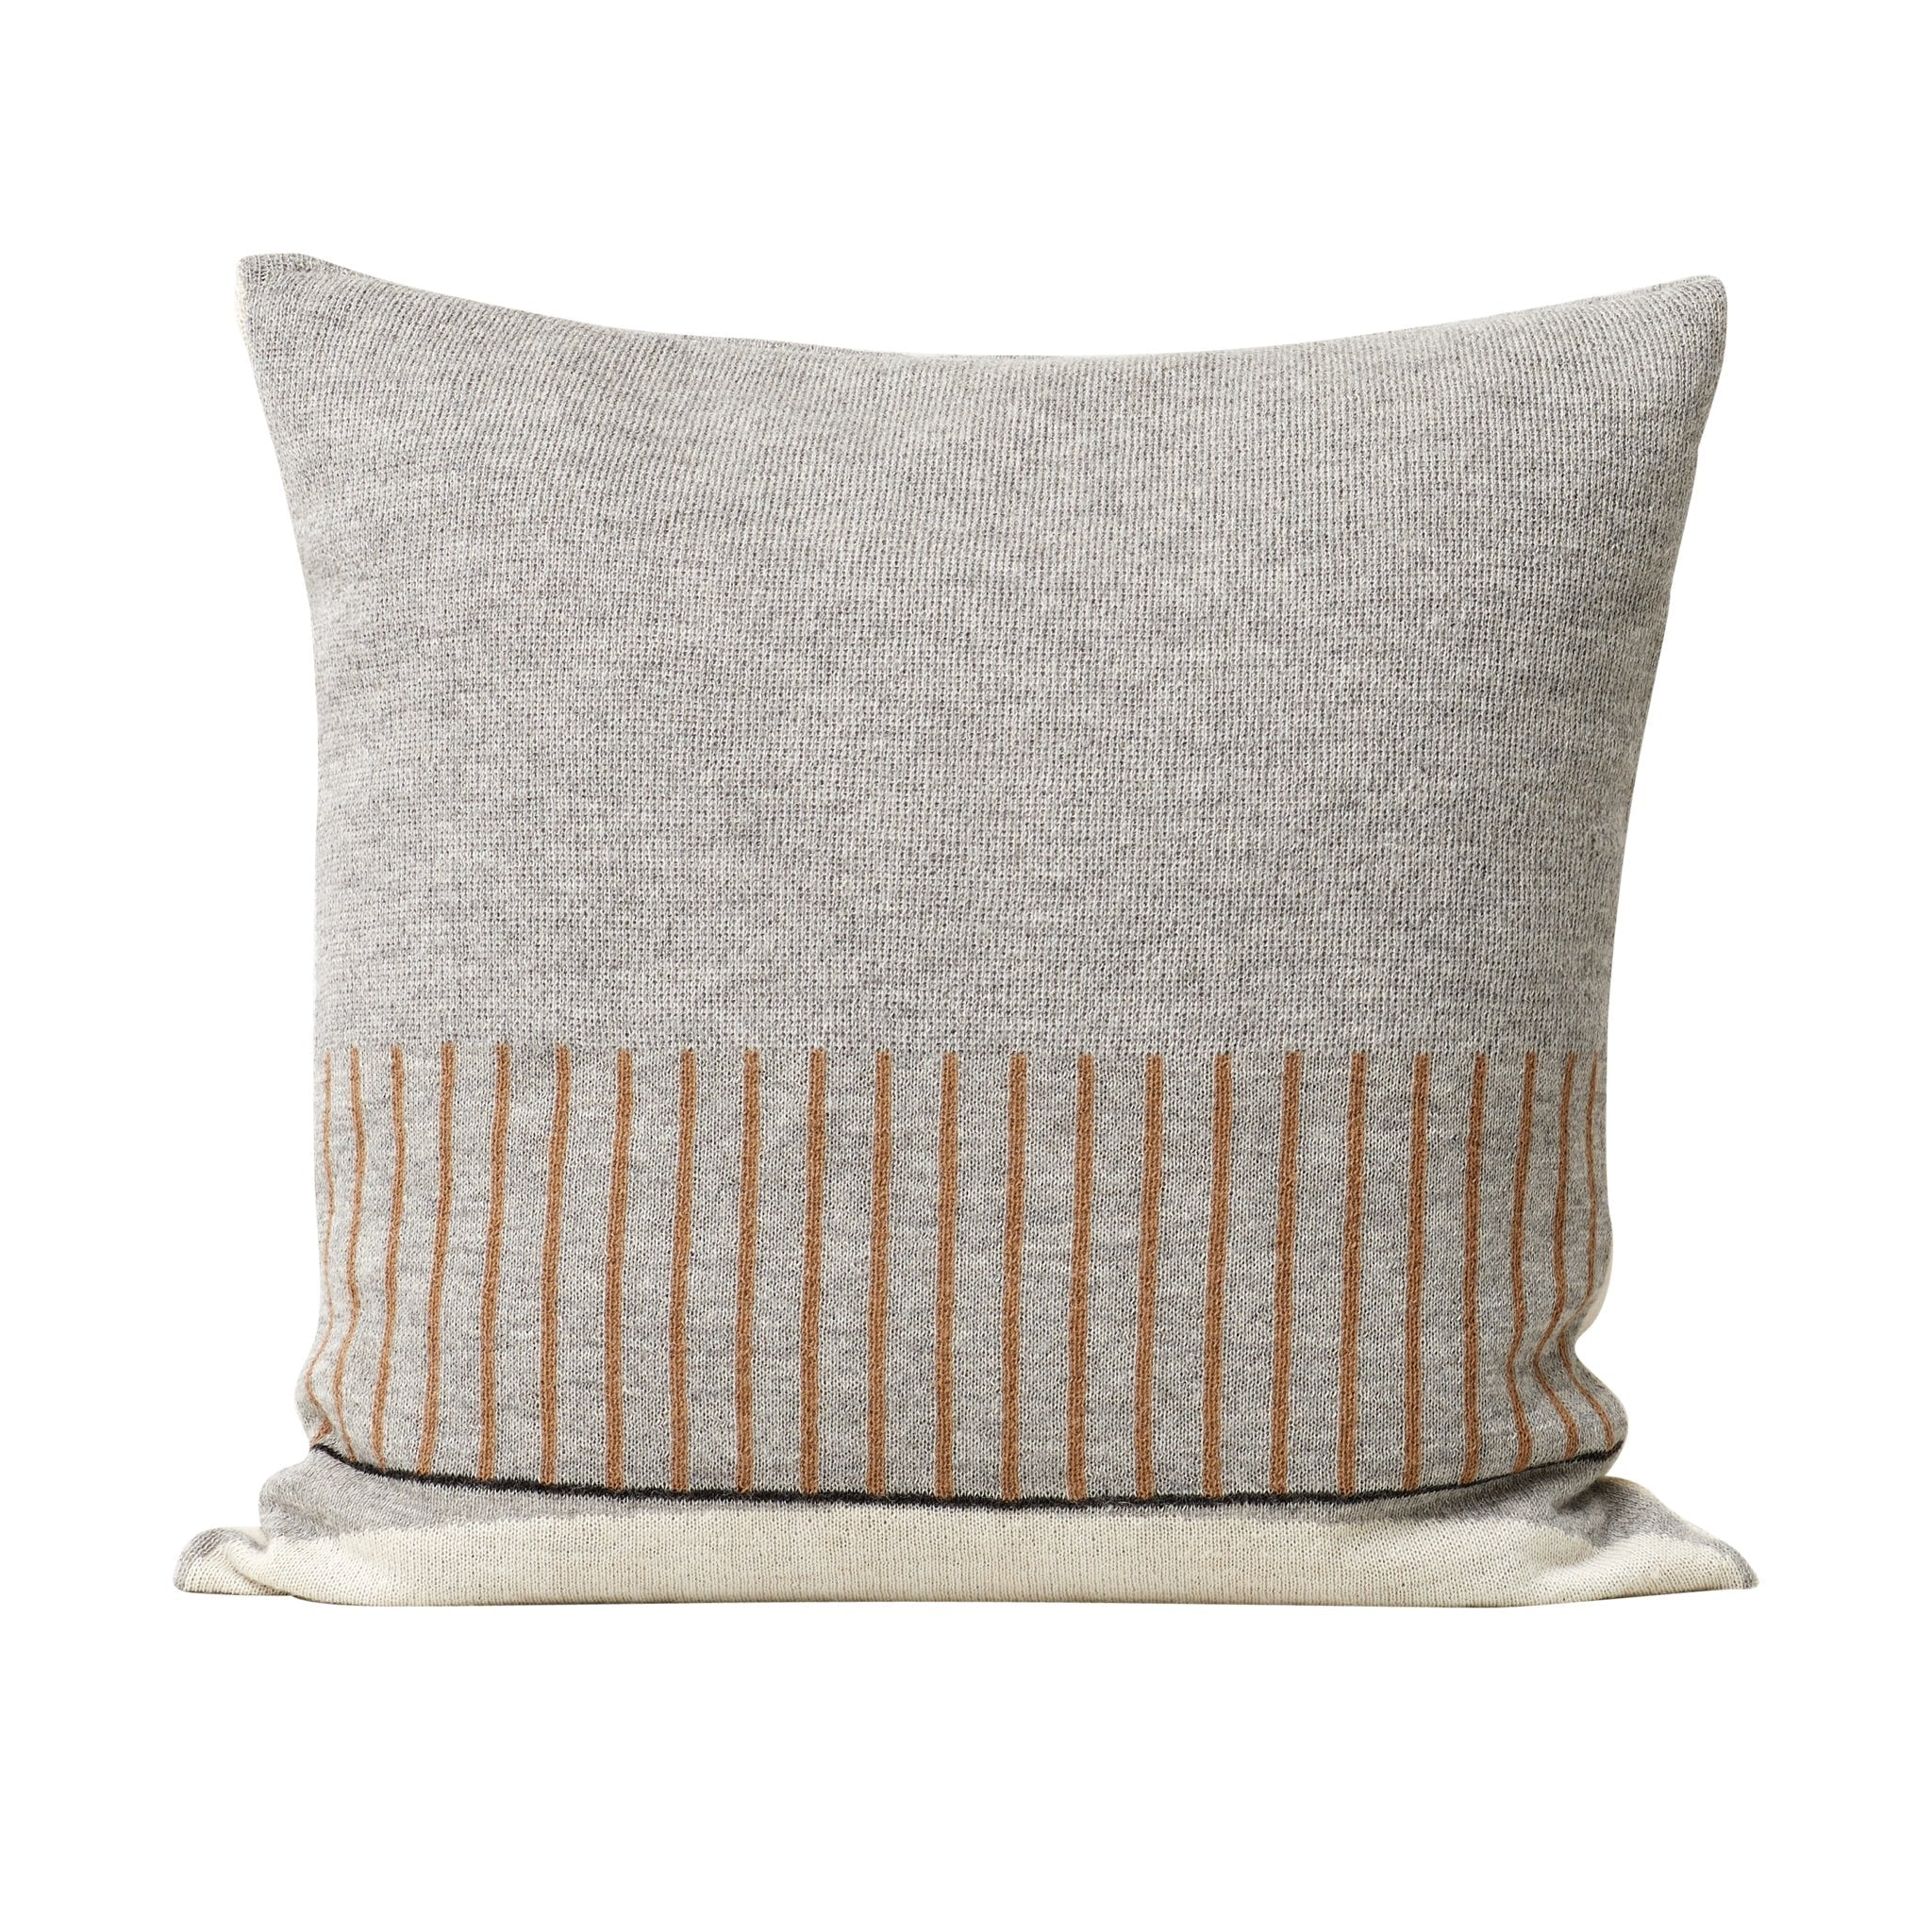 Aymara Cushion Pattern Grey by Form and Refine